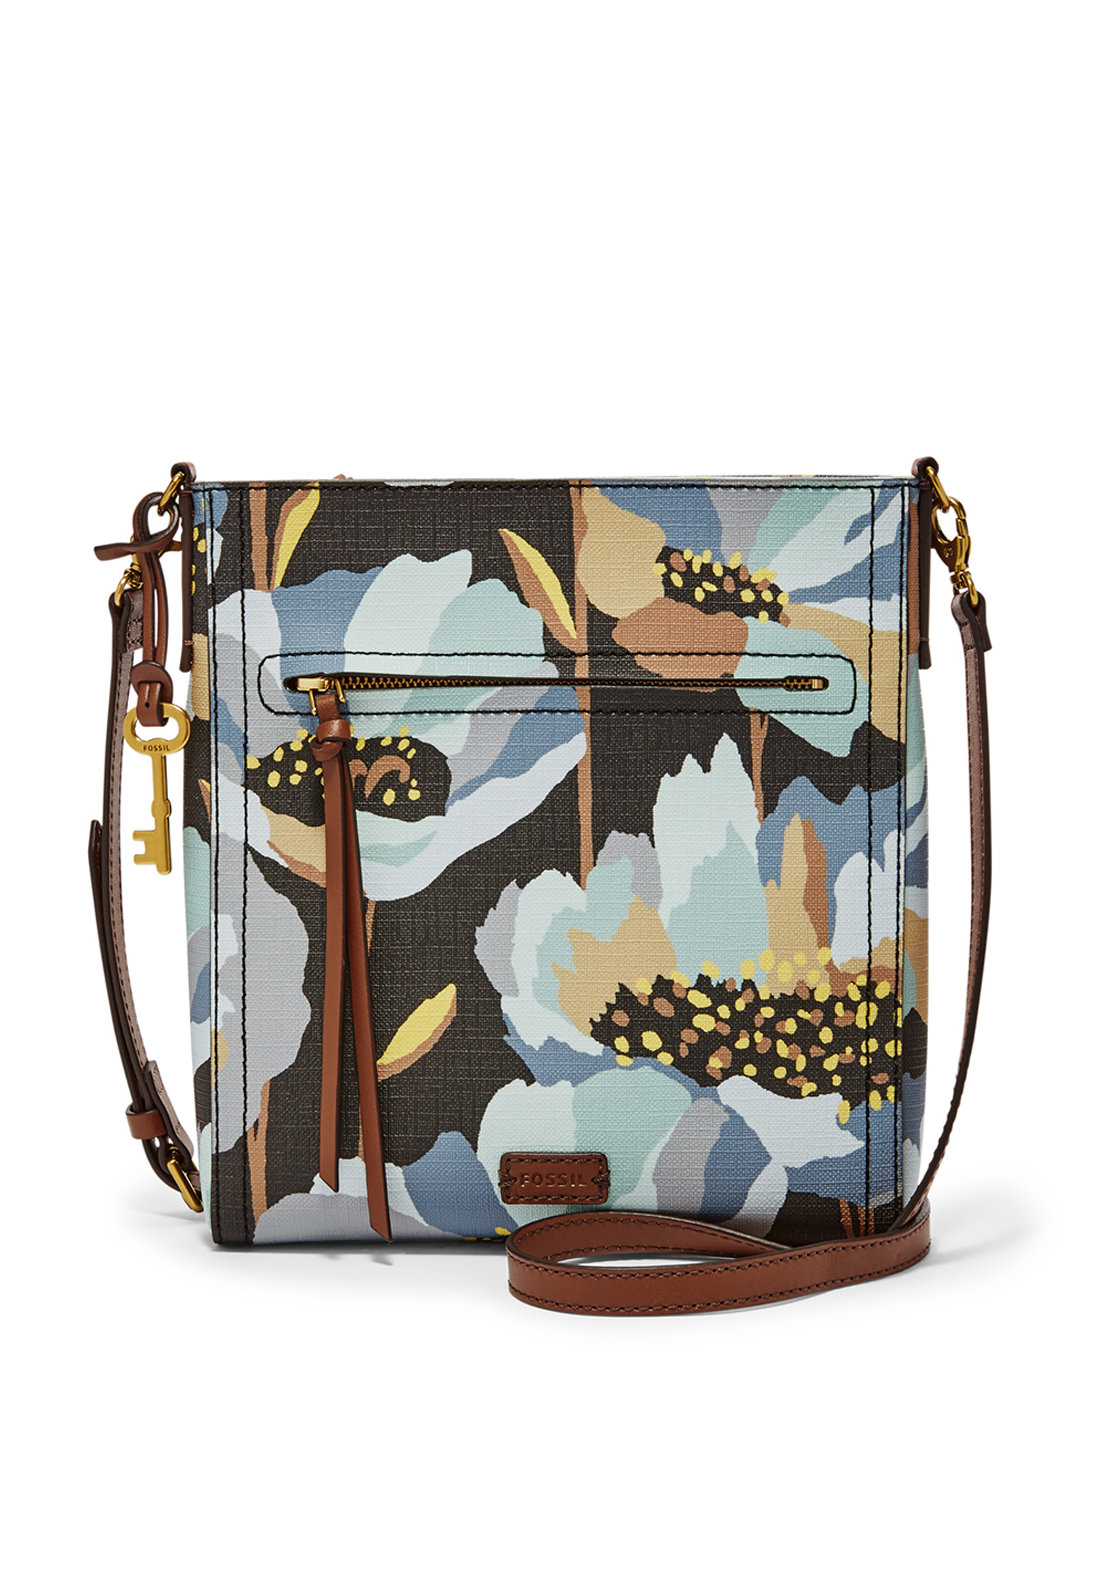 Fossil Emma Floral Print Faux Leather Crossbody Bag, Dark Floral